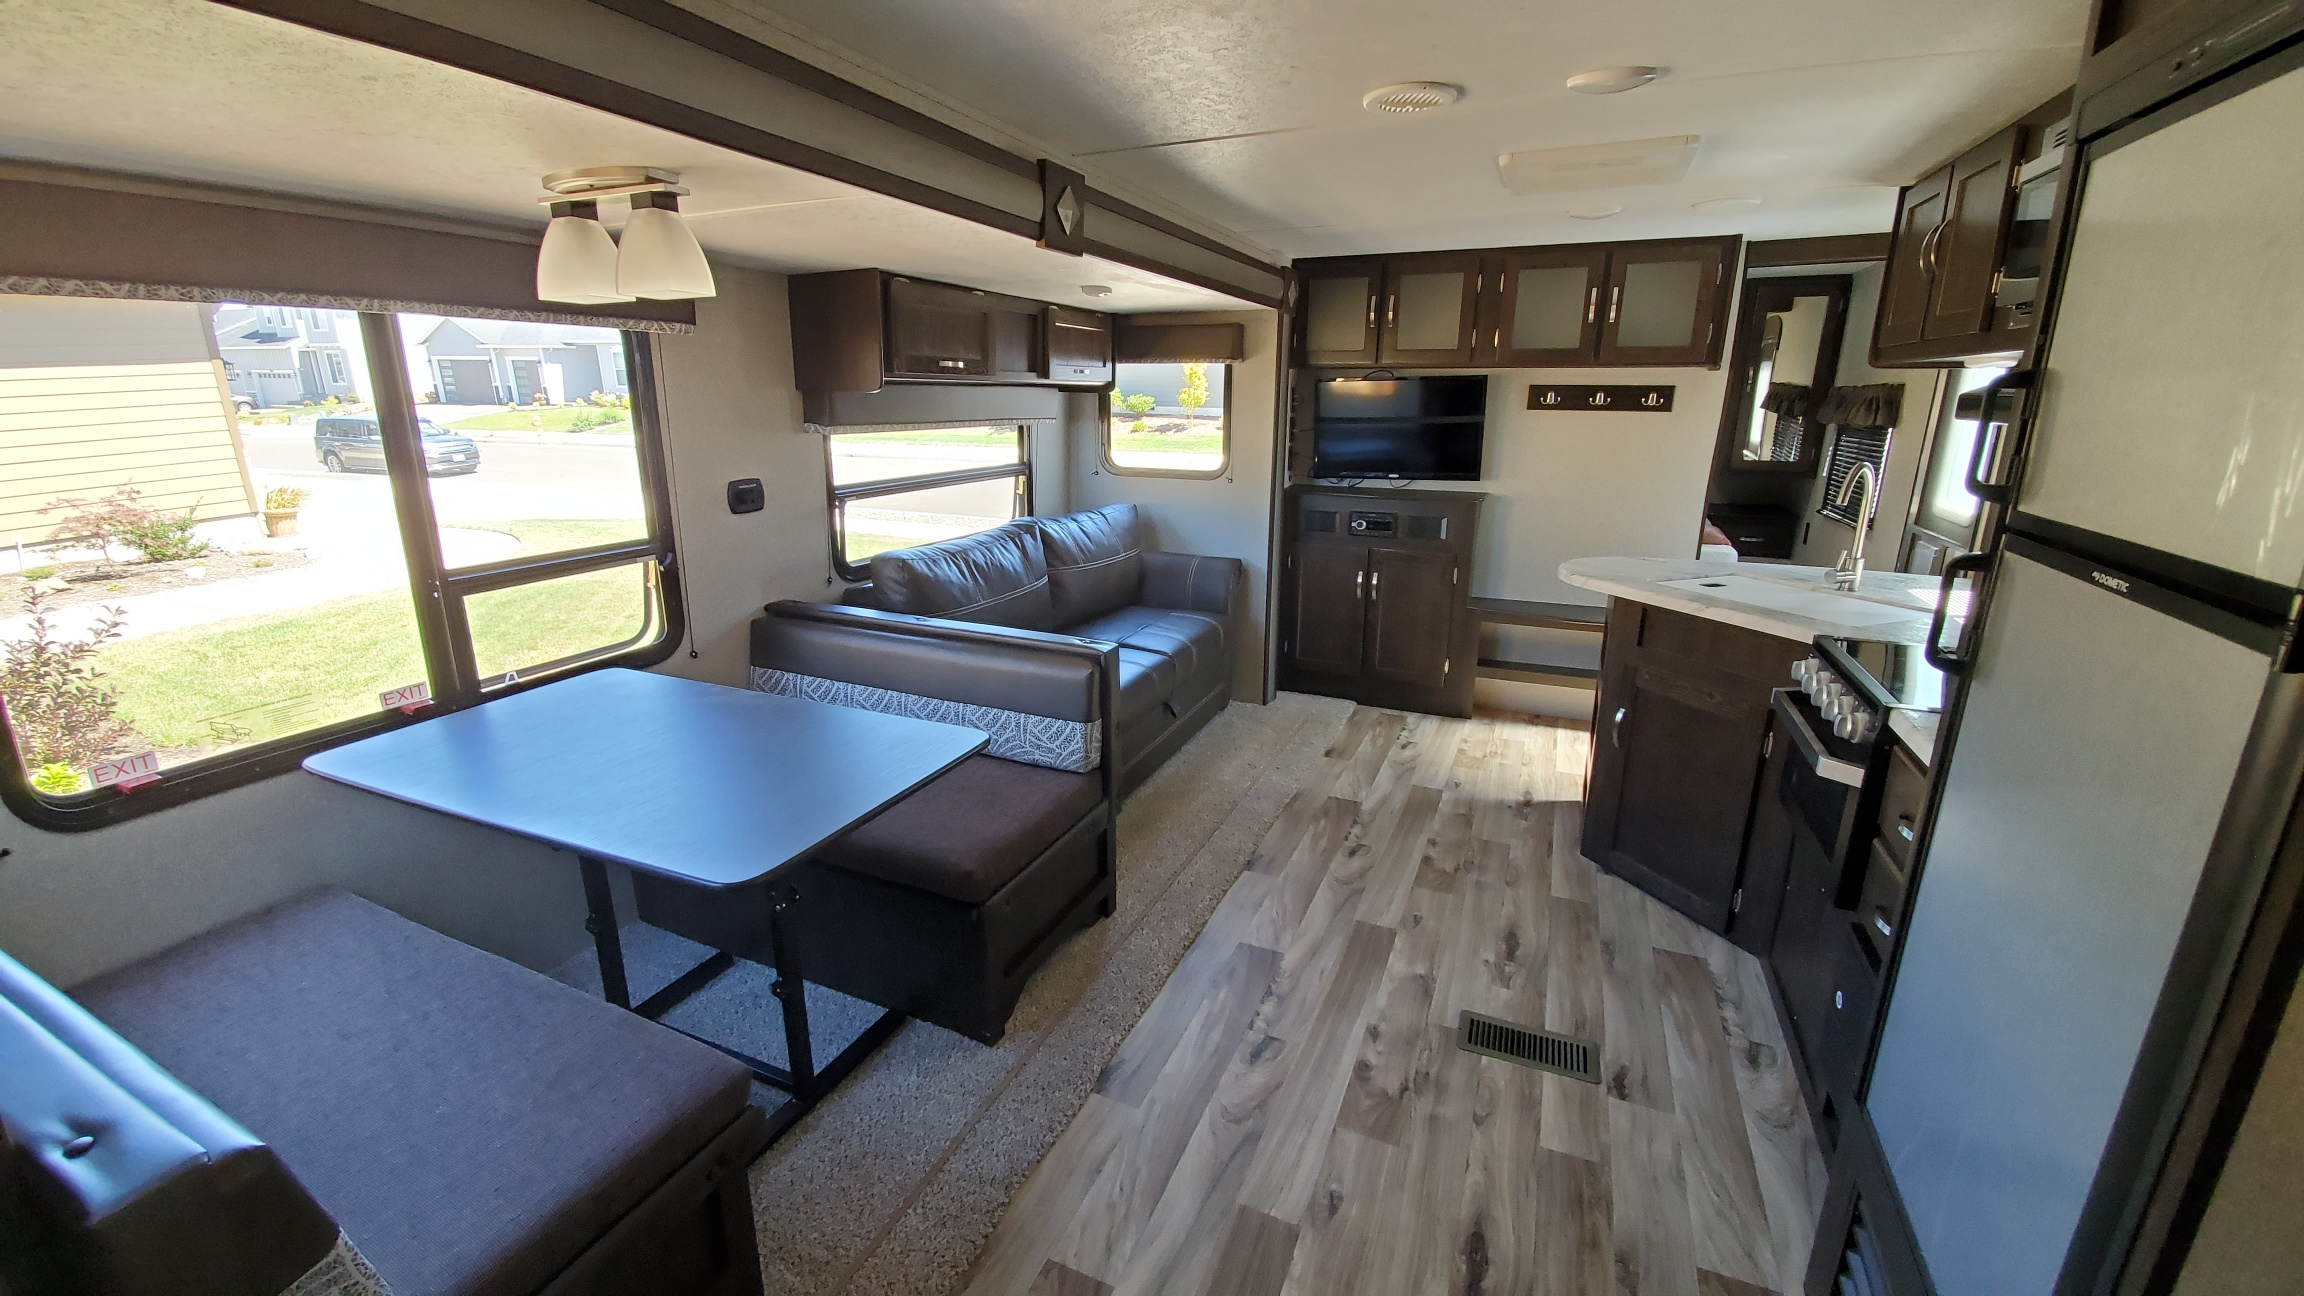 Dinning table and couch with entertainment center. Keystone Springdale 2019